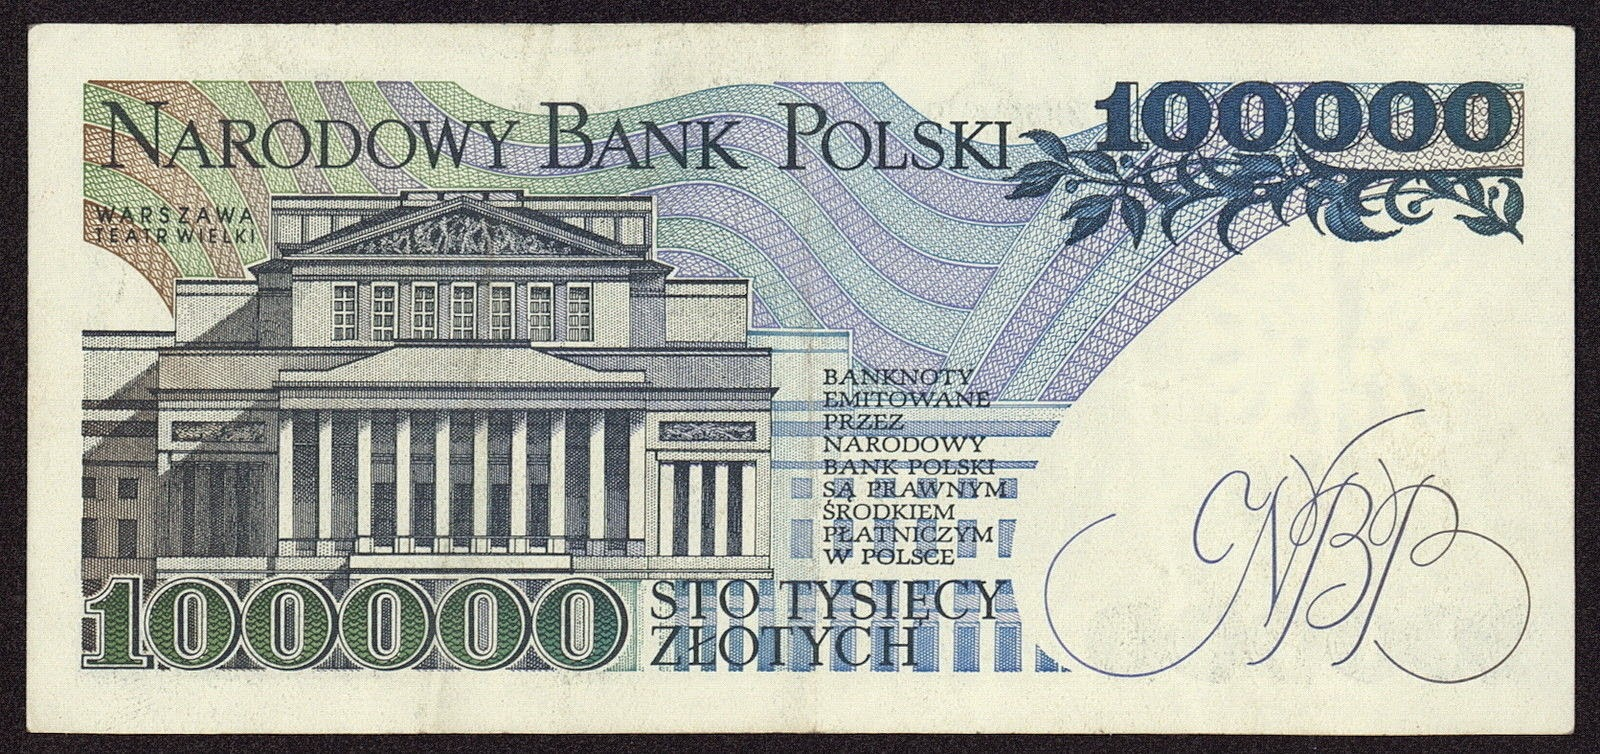 Poland Banknotes 100000 Zloty banknote 1990 Grand Theatre and National Opera in Warsaw